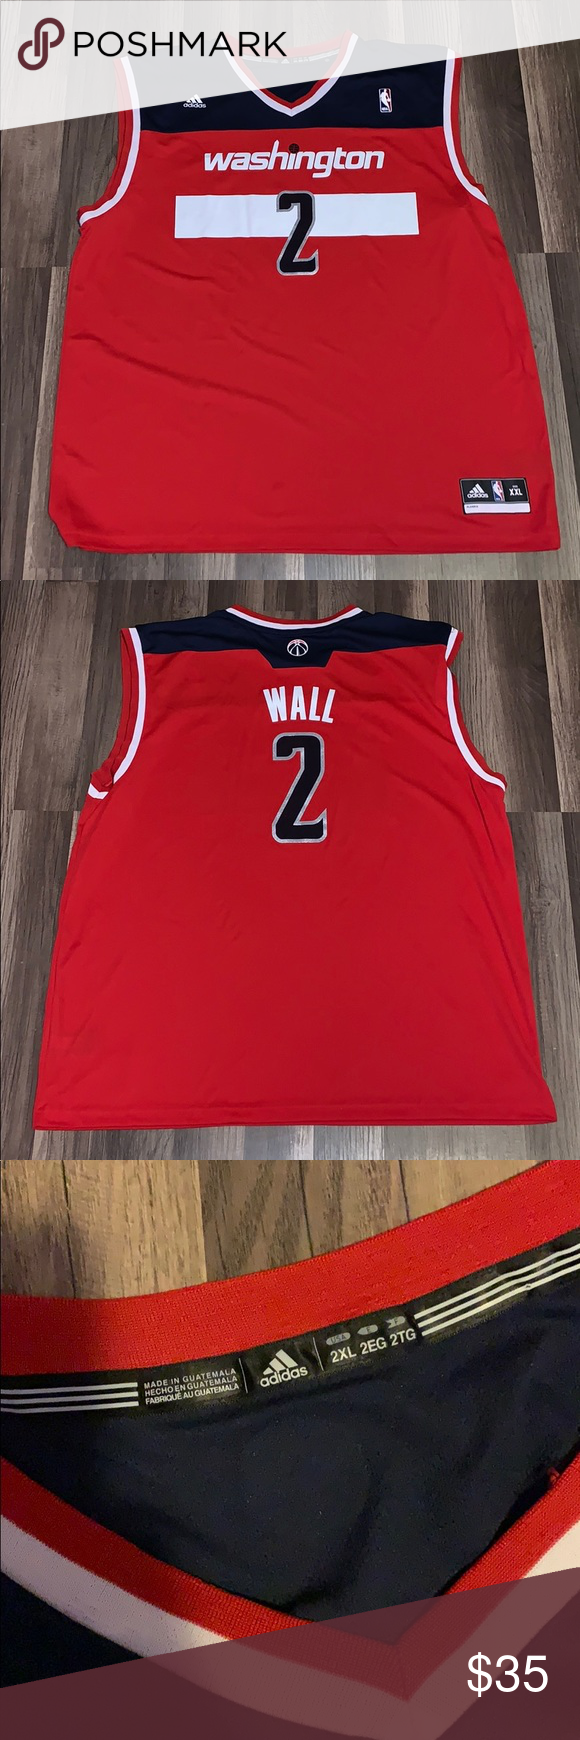 new arrivals 700dd cce96 John Wall Wizards Jersey - XXL Adidas Wizards Jersey Smoke free home adidas  Other